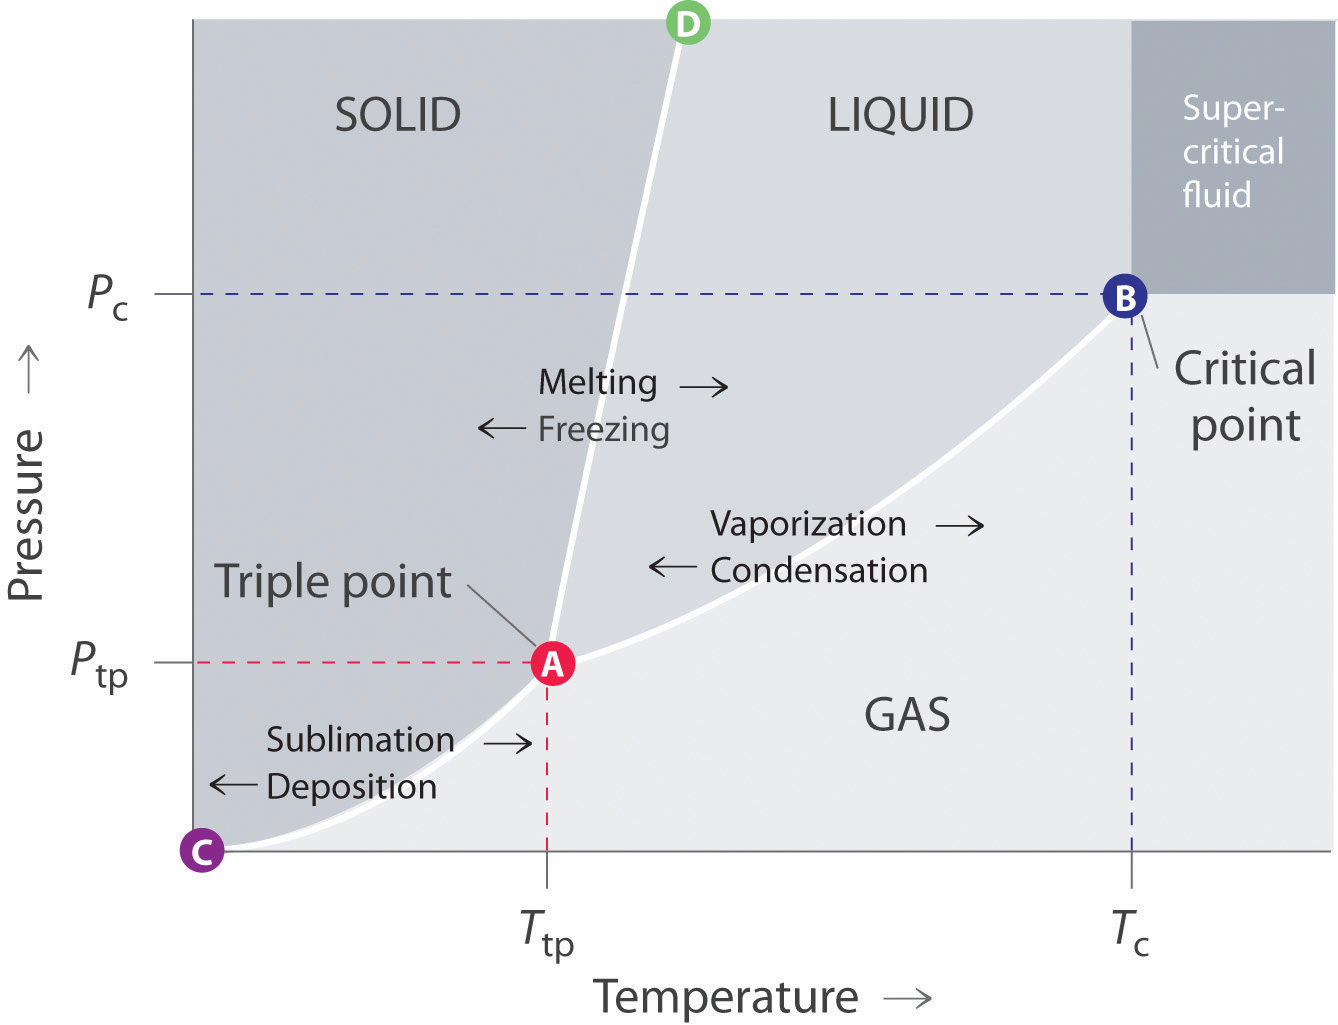 diagram of solid liquid and gas wrist hand unlabeled phase diagrams